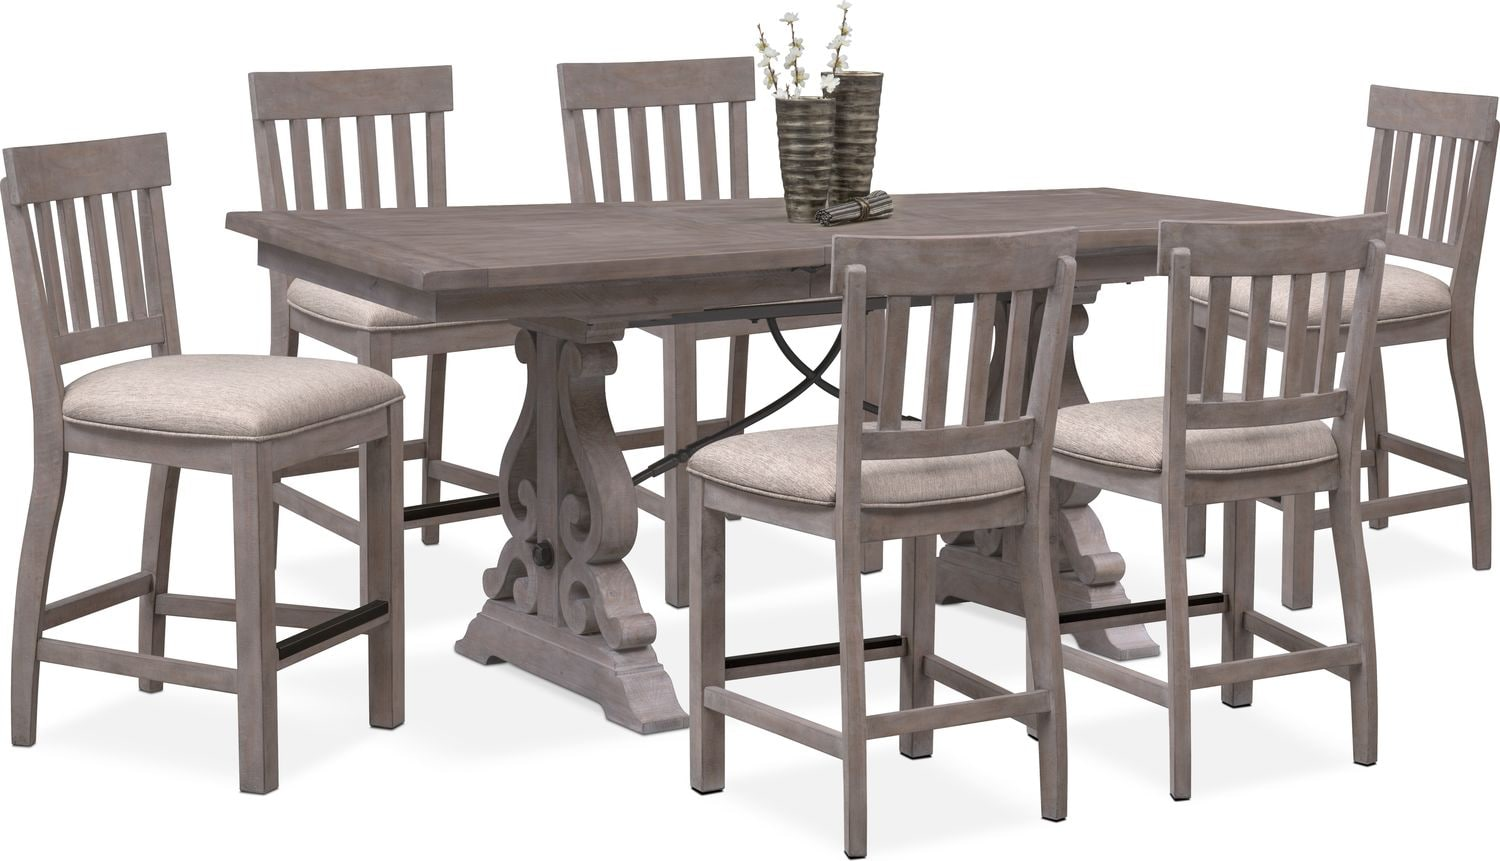 Charthouse Counter Height Dining Table And 6 Stools   Gray